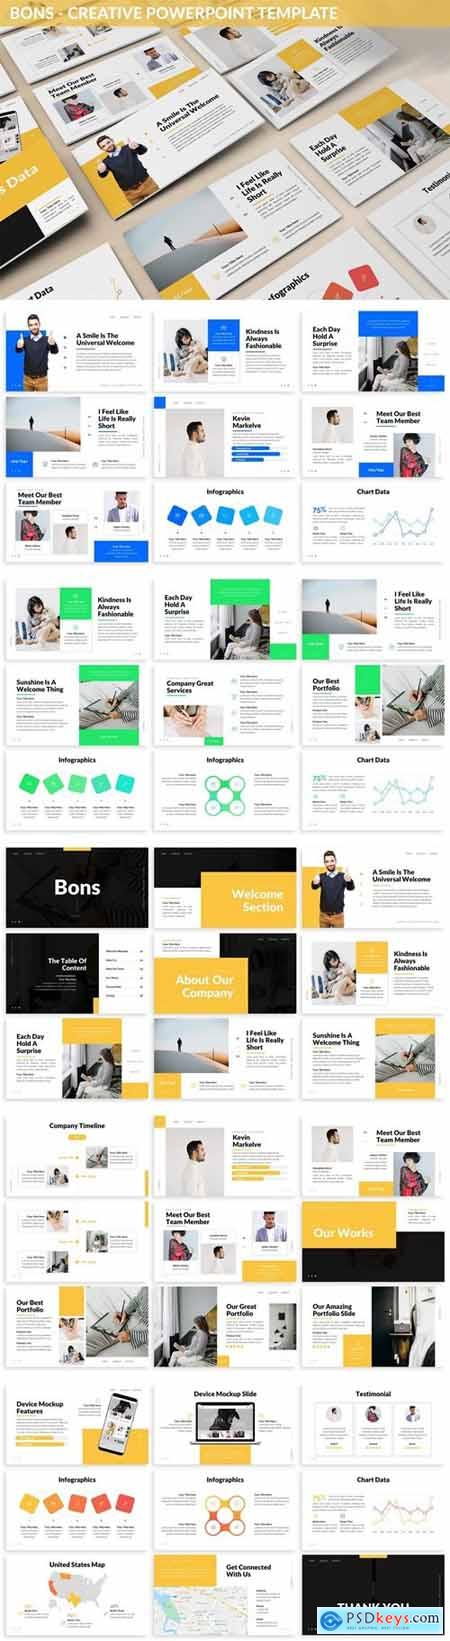 Bons - Creative Powerpoint Template